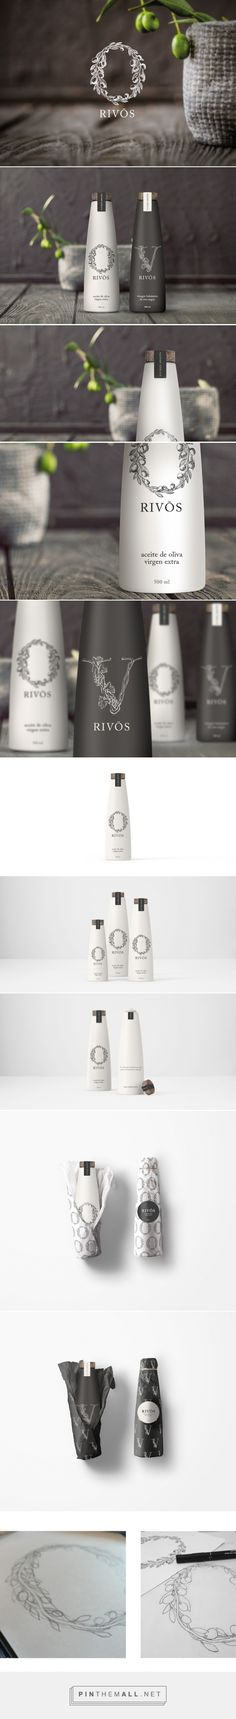 Rivōs (Student Project) - Packaging of the World - Creative Package Design Gallery - http://www.packagingoftheworld.com/2016/06/rivos-student-project.html